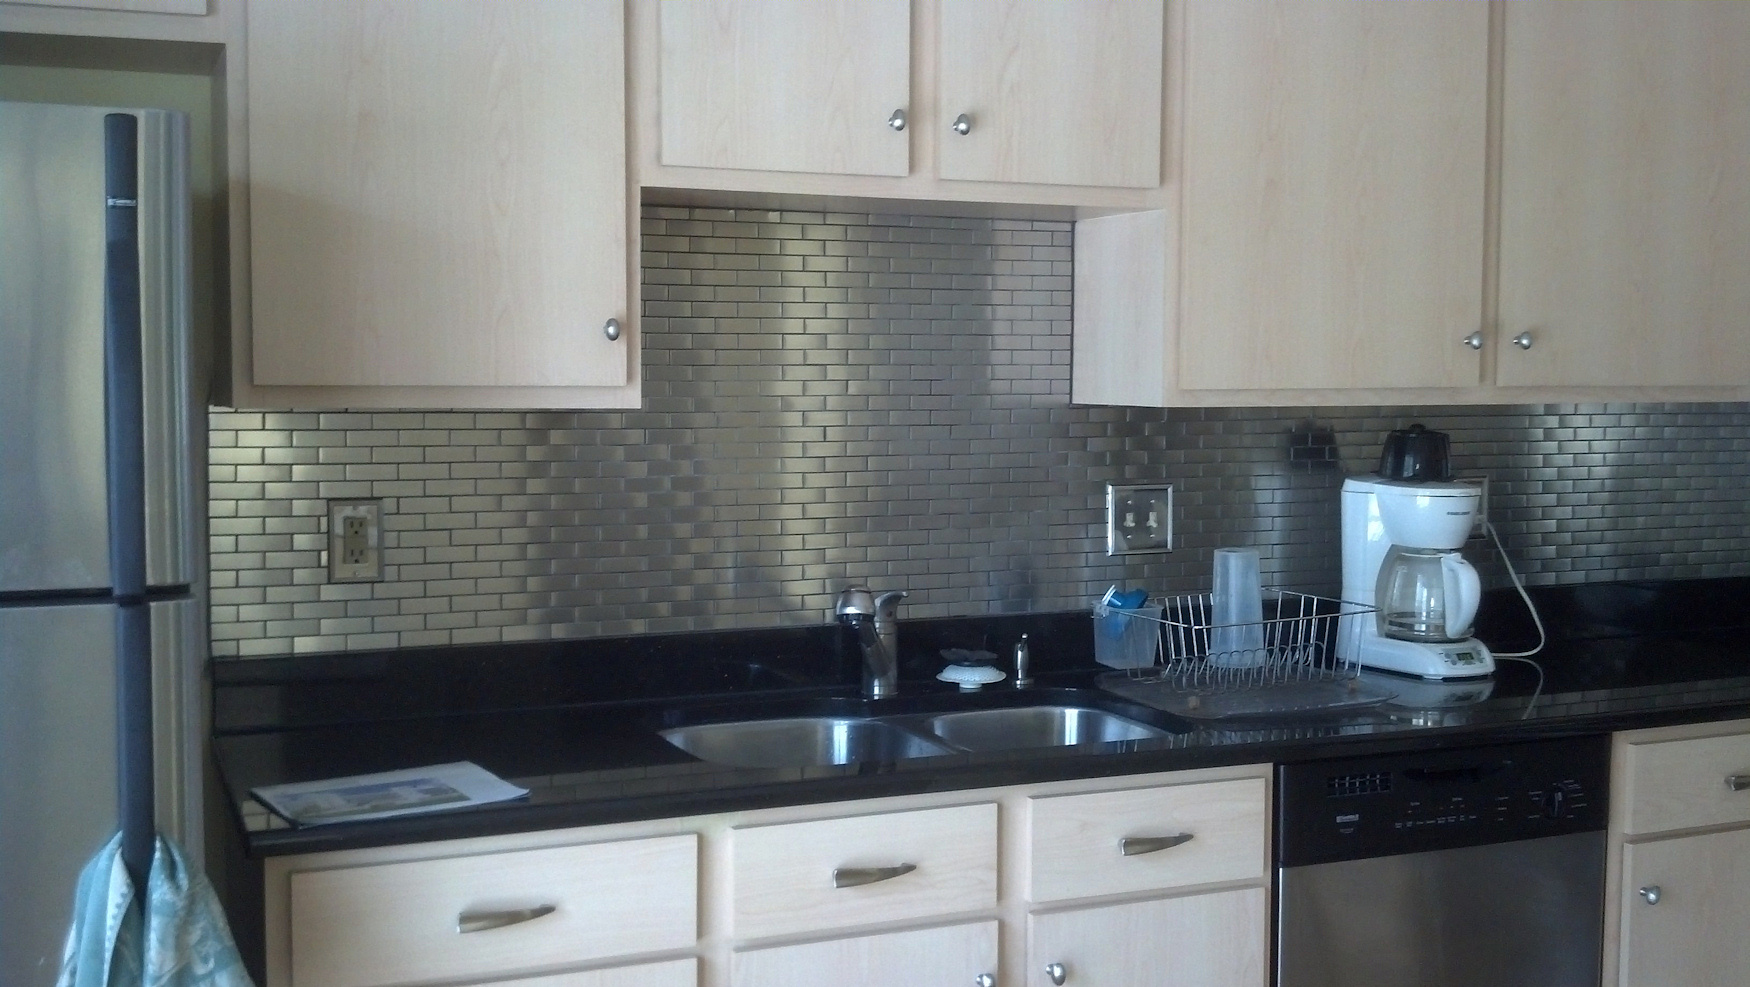 Ikea stainless steel backsplash the point pluses homesfeed for Black and white painted kitchen cabinets